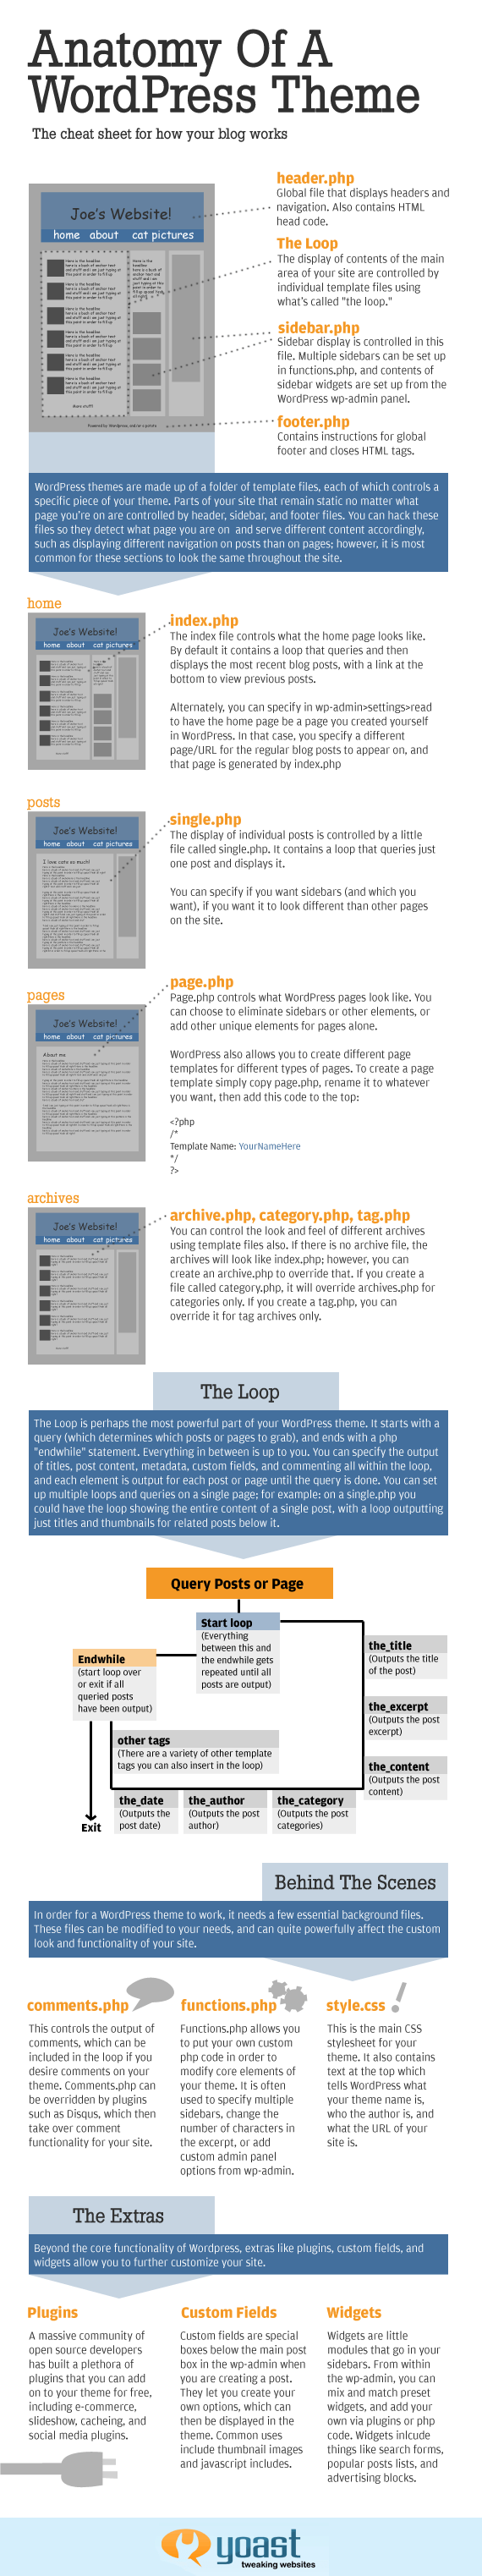 anatomy wordpress theme The Anatomy of a WordPress theme [Infographic]